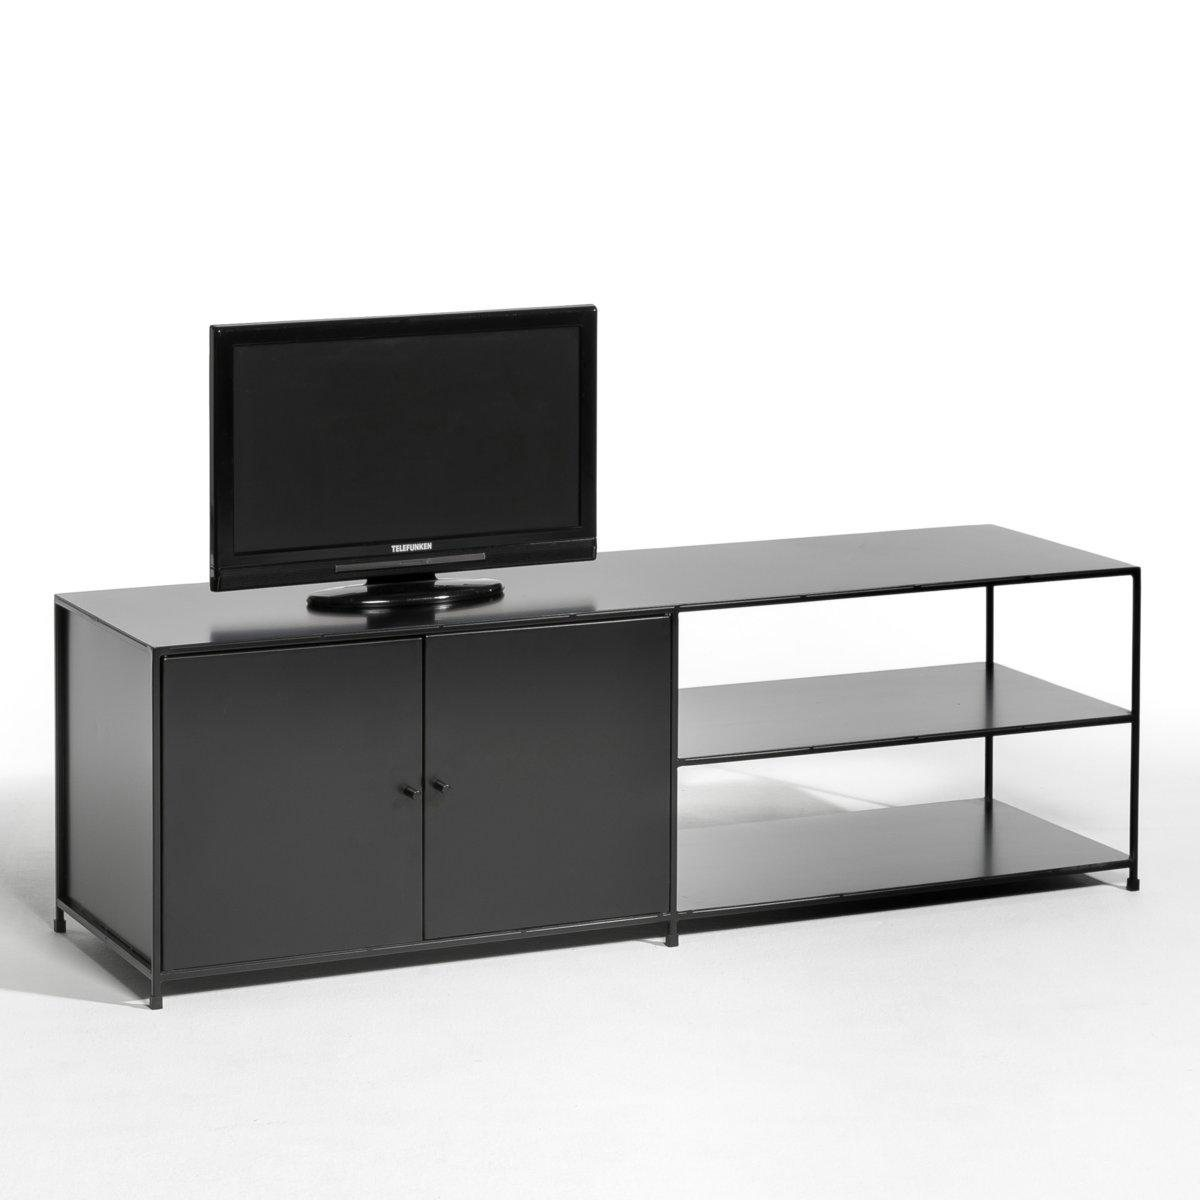 meuble tv m tal romy meuble tv am pm la redoute ventes pas. Black Bedroom Furniture Sets. Home Design Ideas